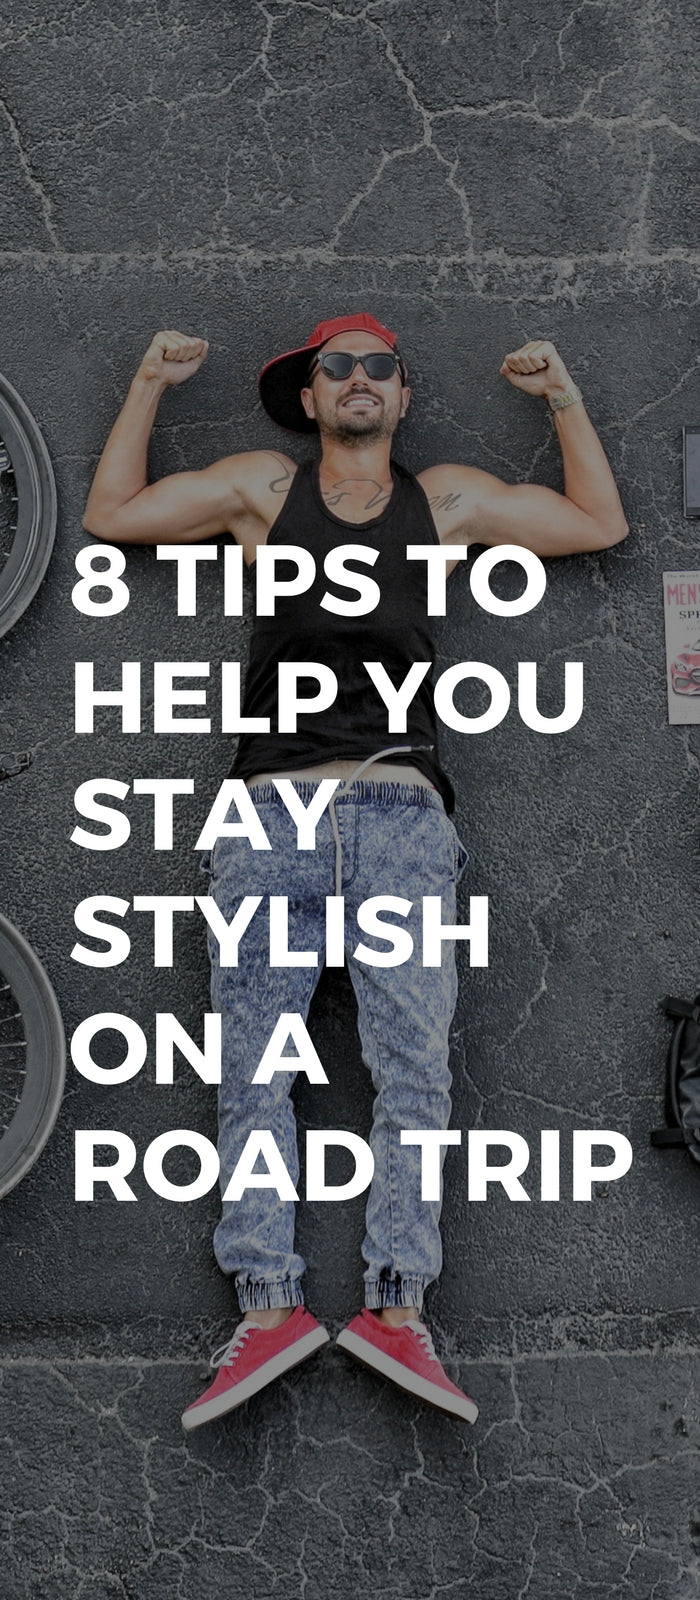 8 Tips to Help You Stay Stylish on a Road Trip